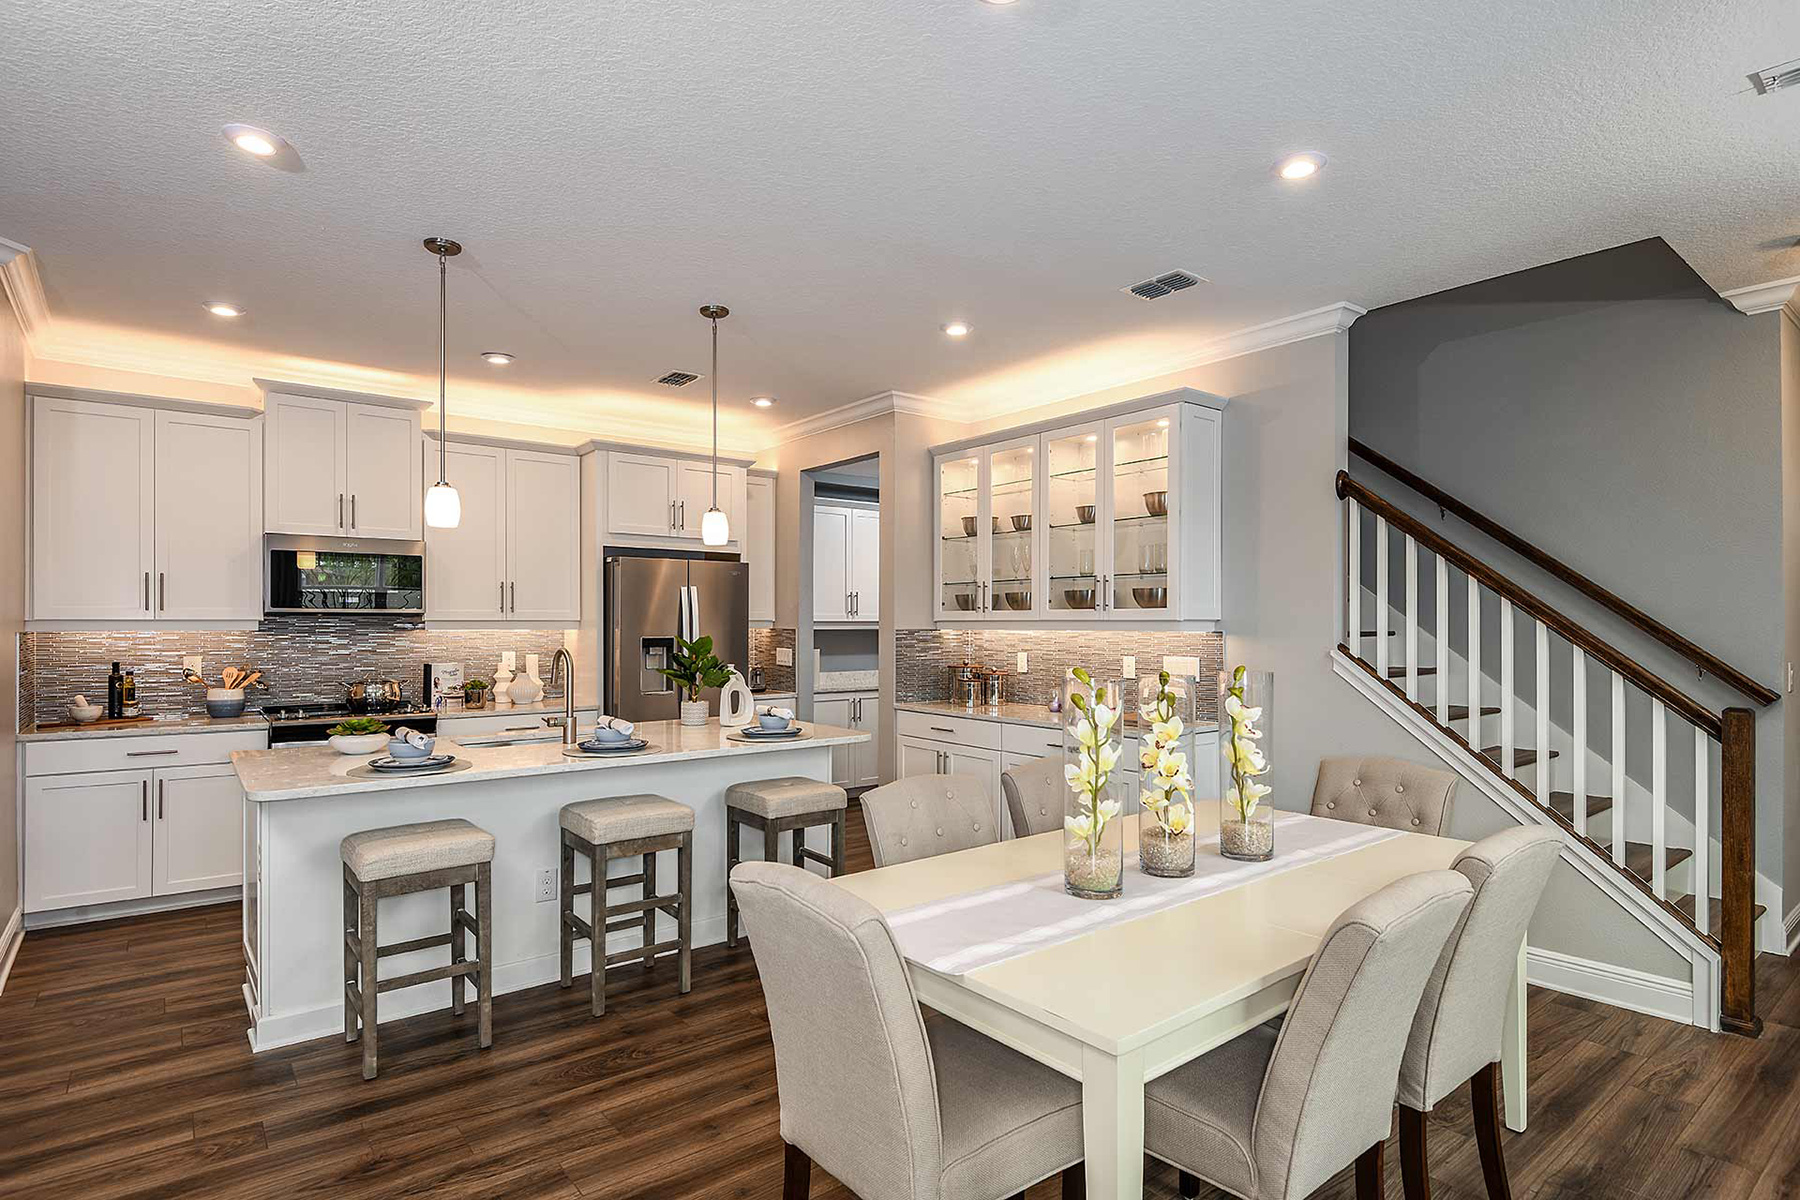 Venice Plan Dining at Avea Pointe in Lutz Florida by Mattamy Homes